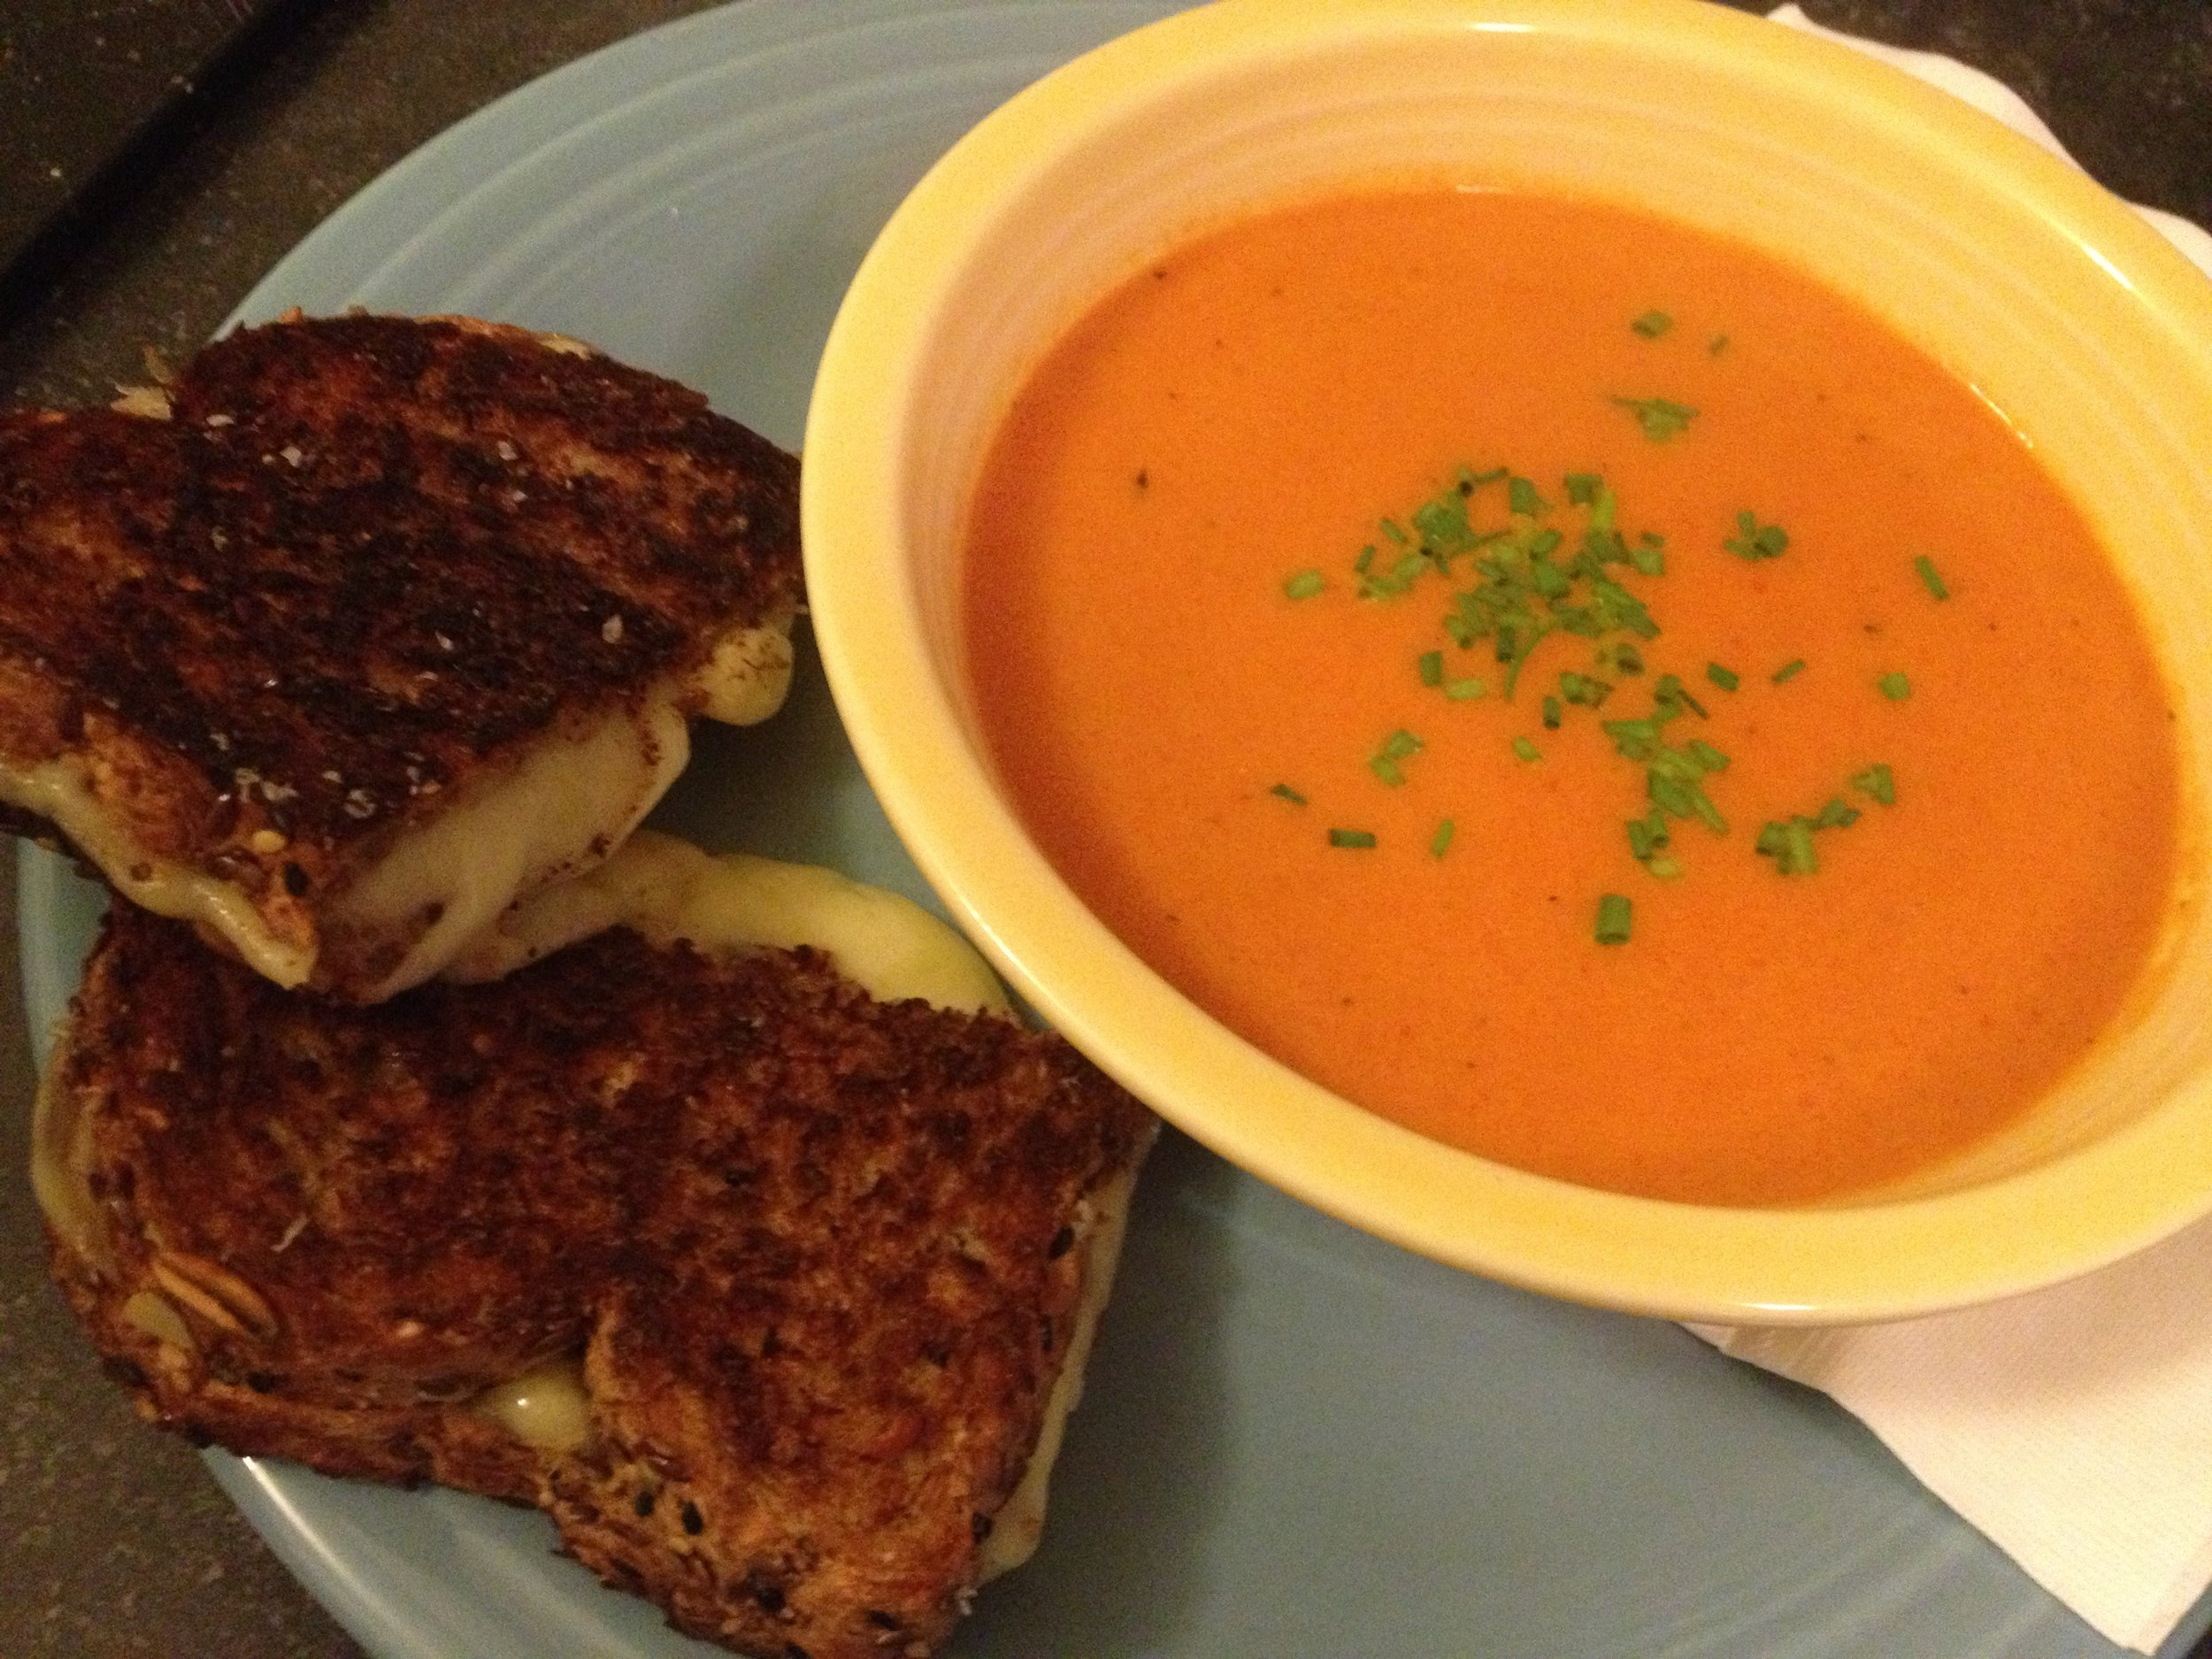 Brian's Grilled Cheese and my Tomato Soup